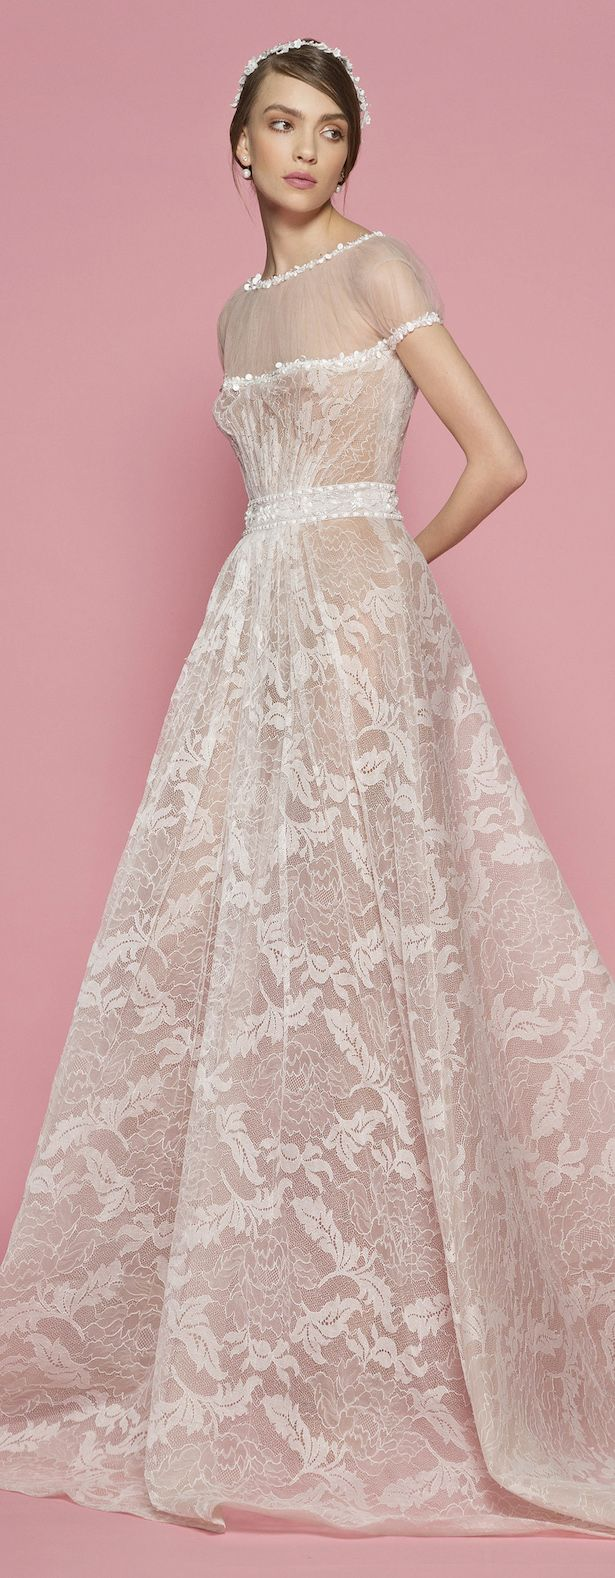 325 best Dresses images on Pinterest | Marriage, Wedding gowns and ...